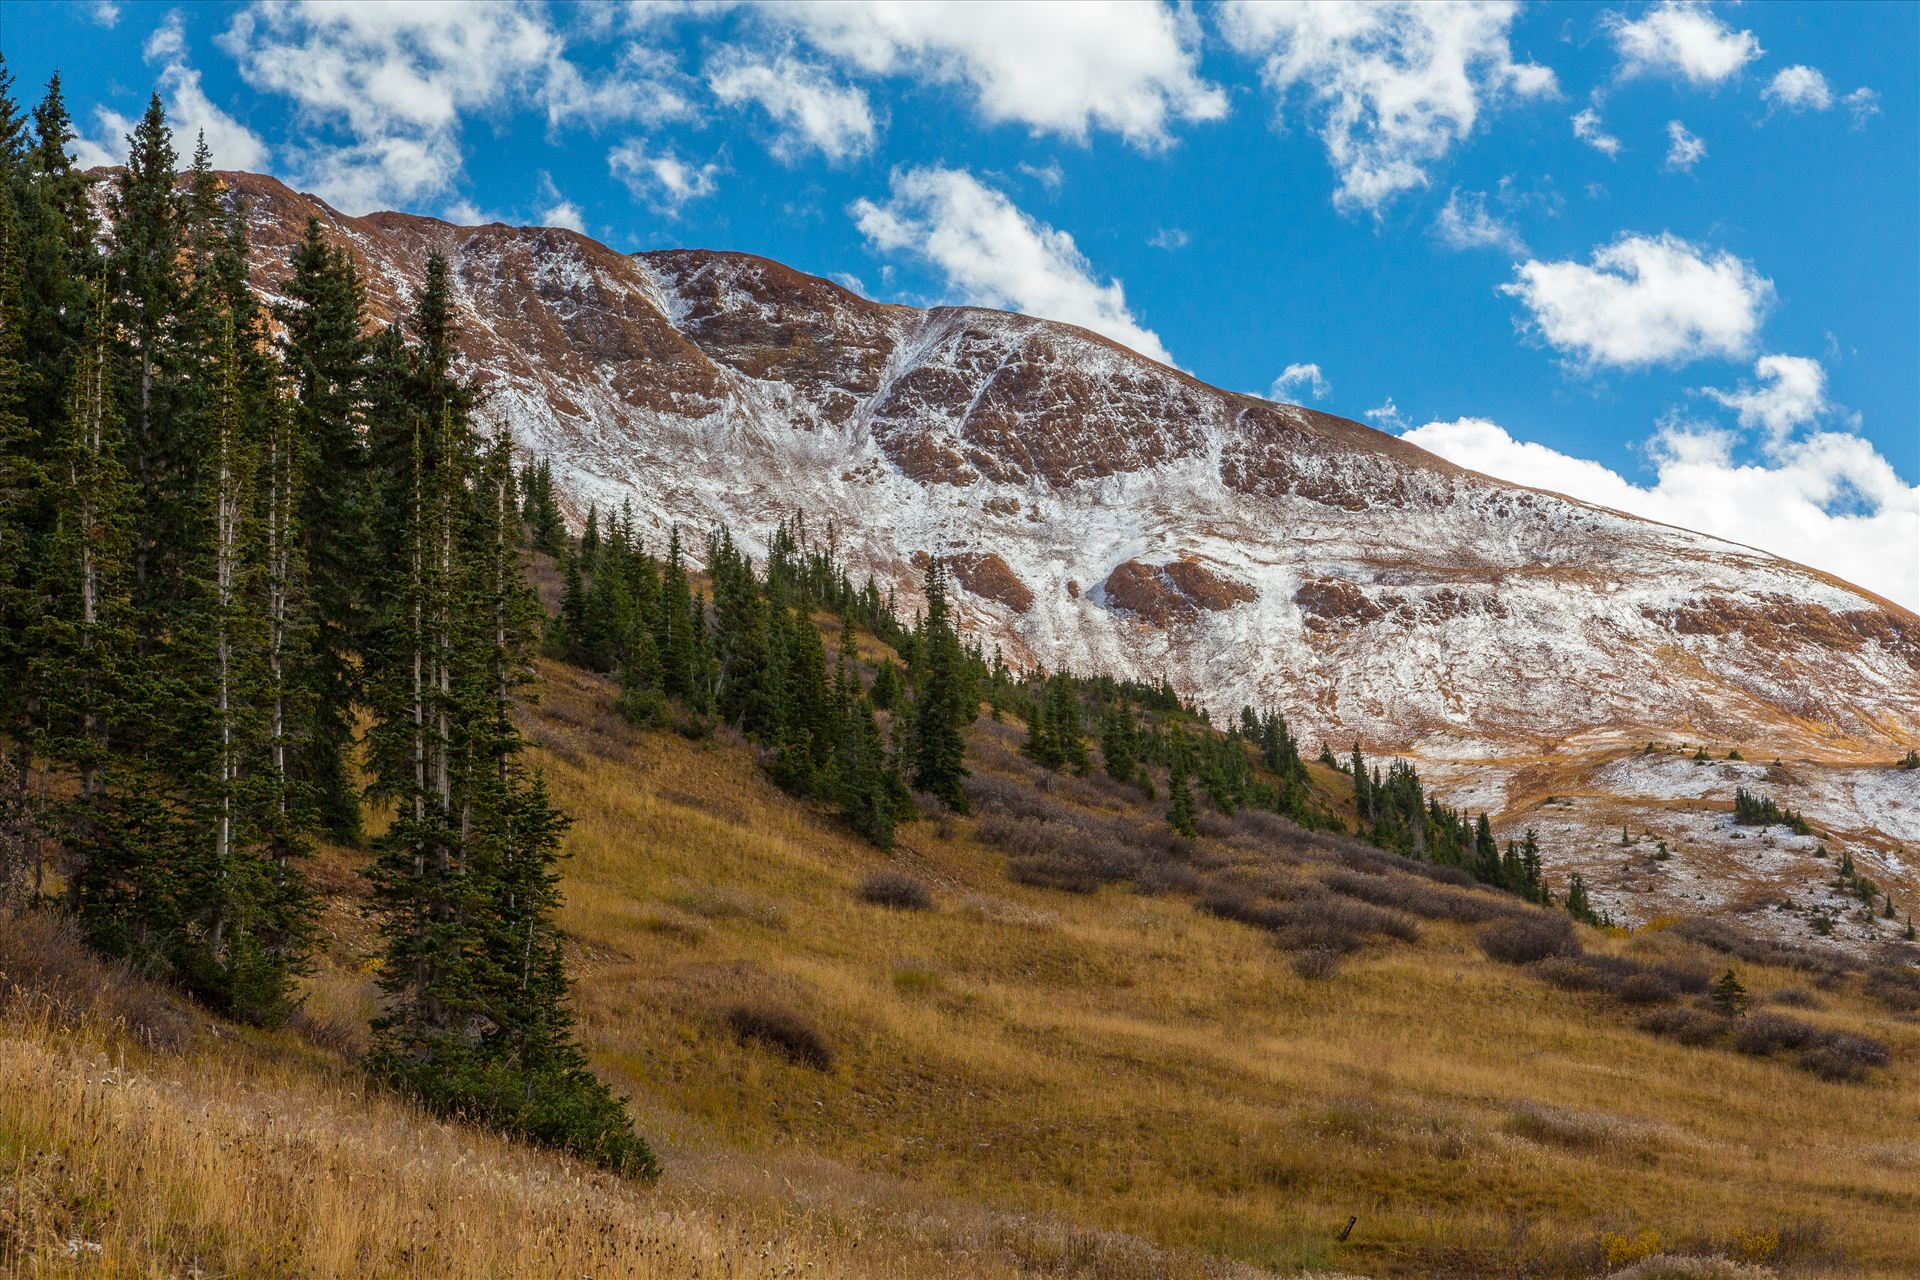 Snow at Mount Baldy Wilderness - Snow on the peaks at the Mount Baldy Wilderness area, near the summit. Taken from Schofield Pass in Crested Butte, Colorado. by D Scott Smith